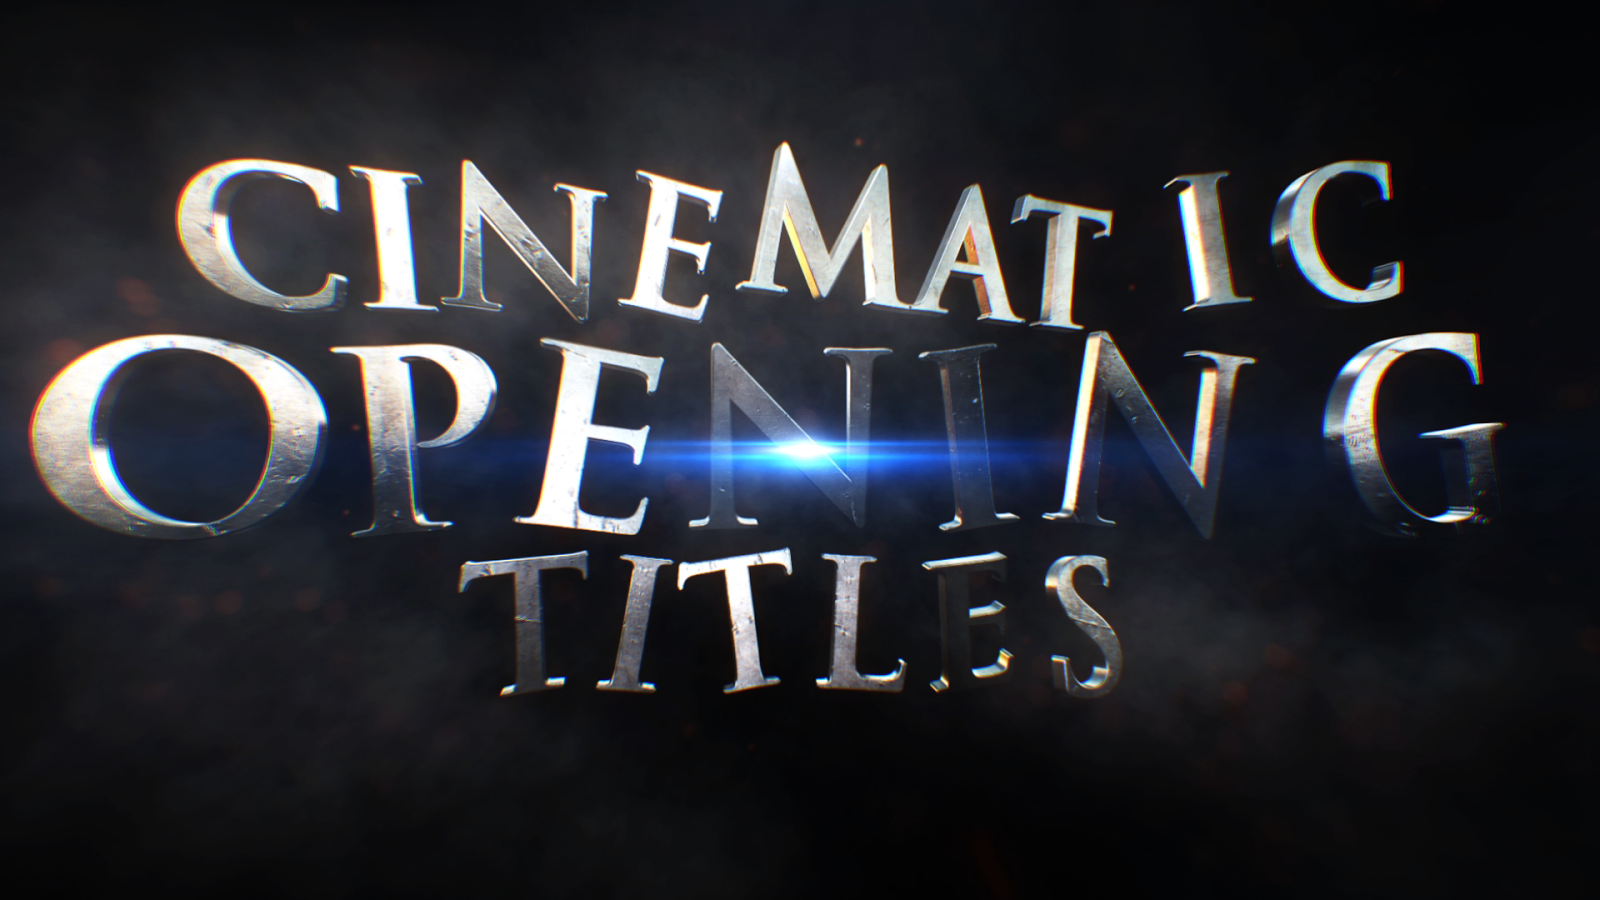 After Effects Template - Cinematic Opening Titles - gosharemore ... for after effects templates free download zip  186ref